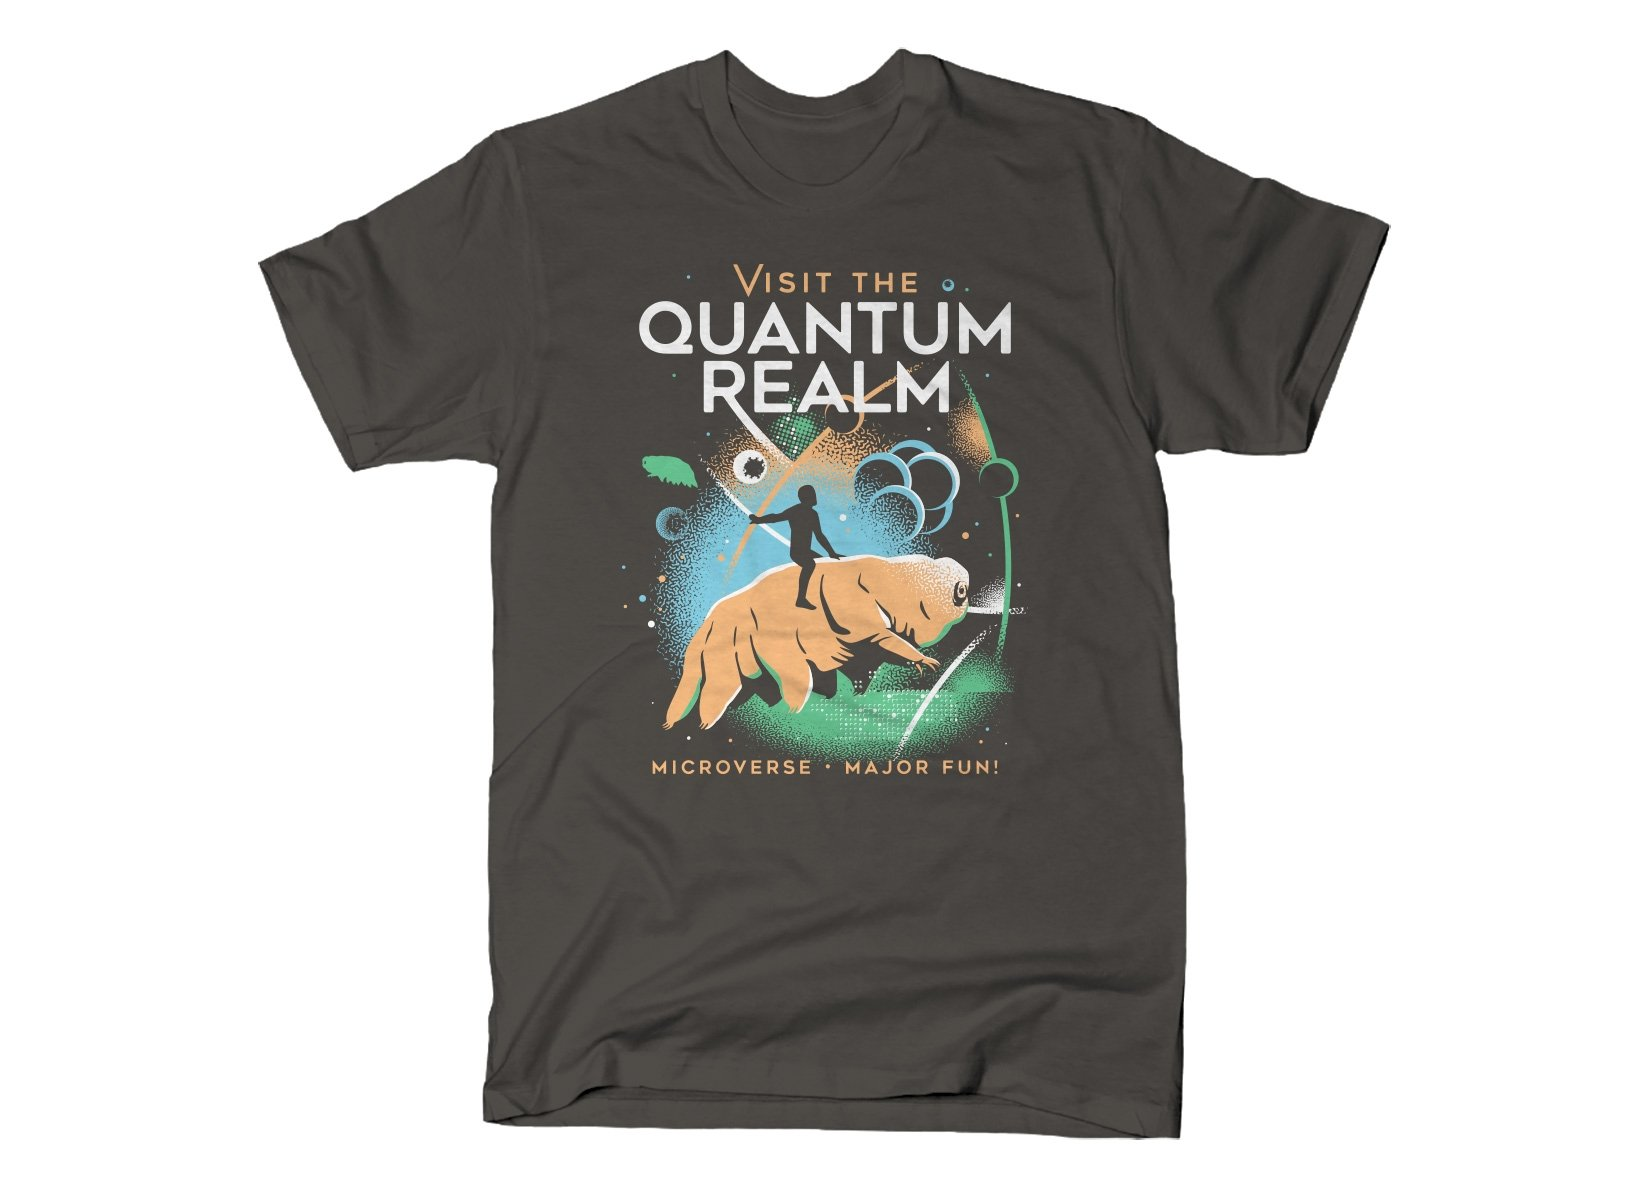 Visit The Quantum Realm on Mens T-Shirt